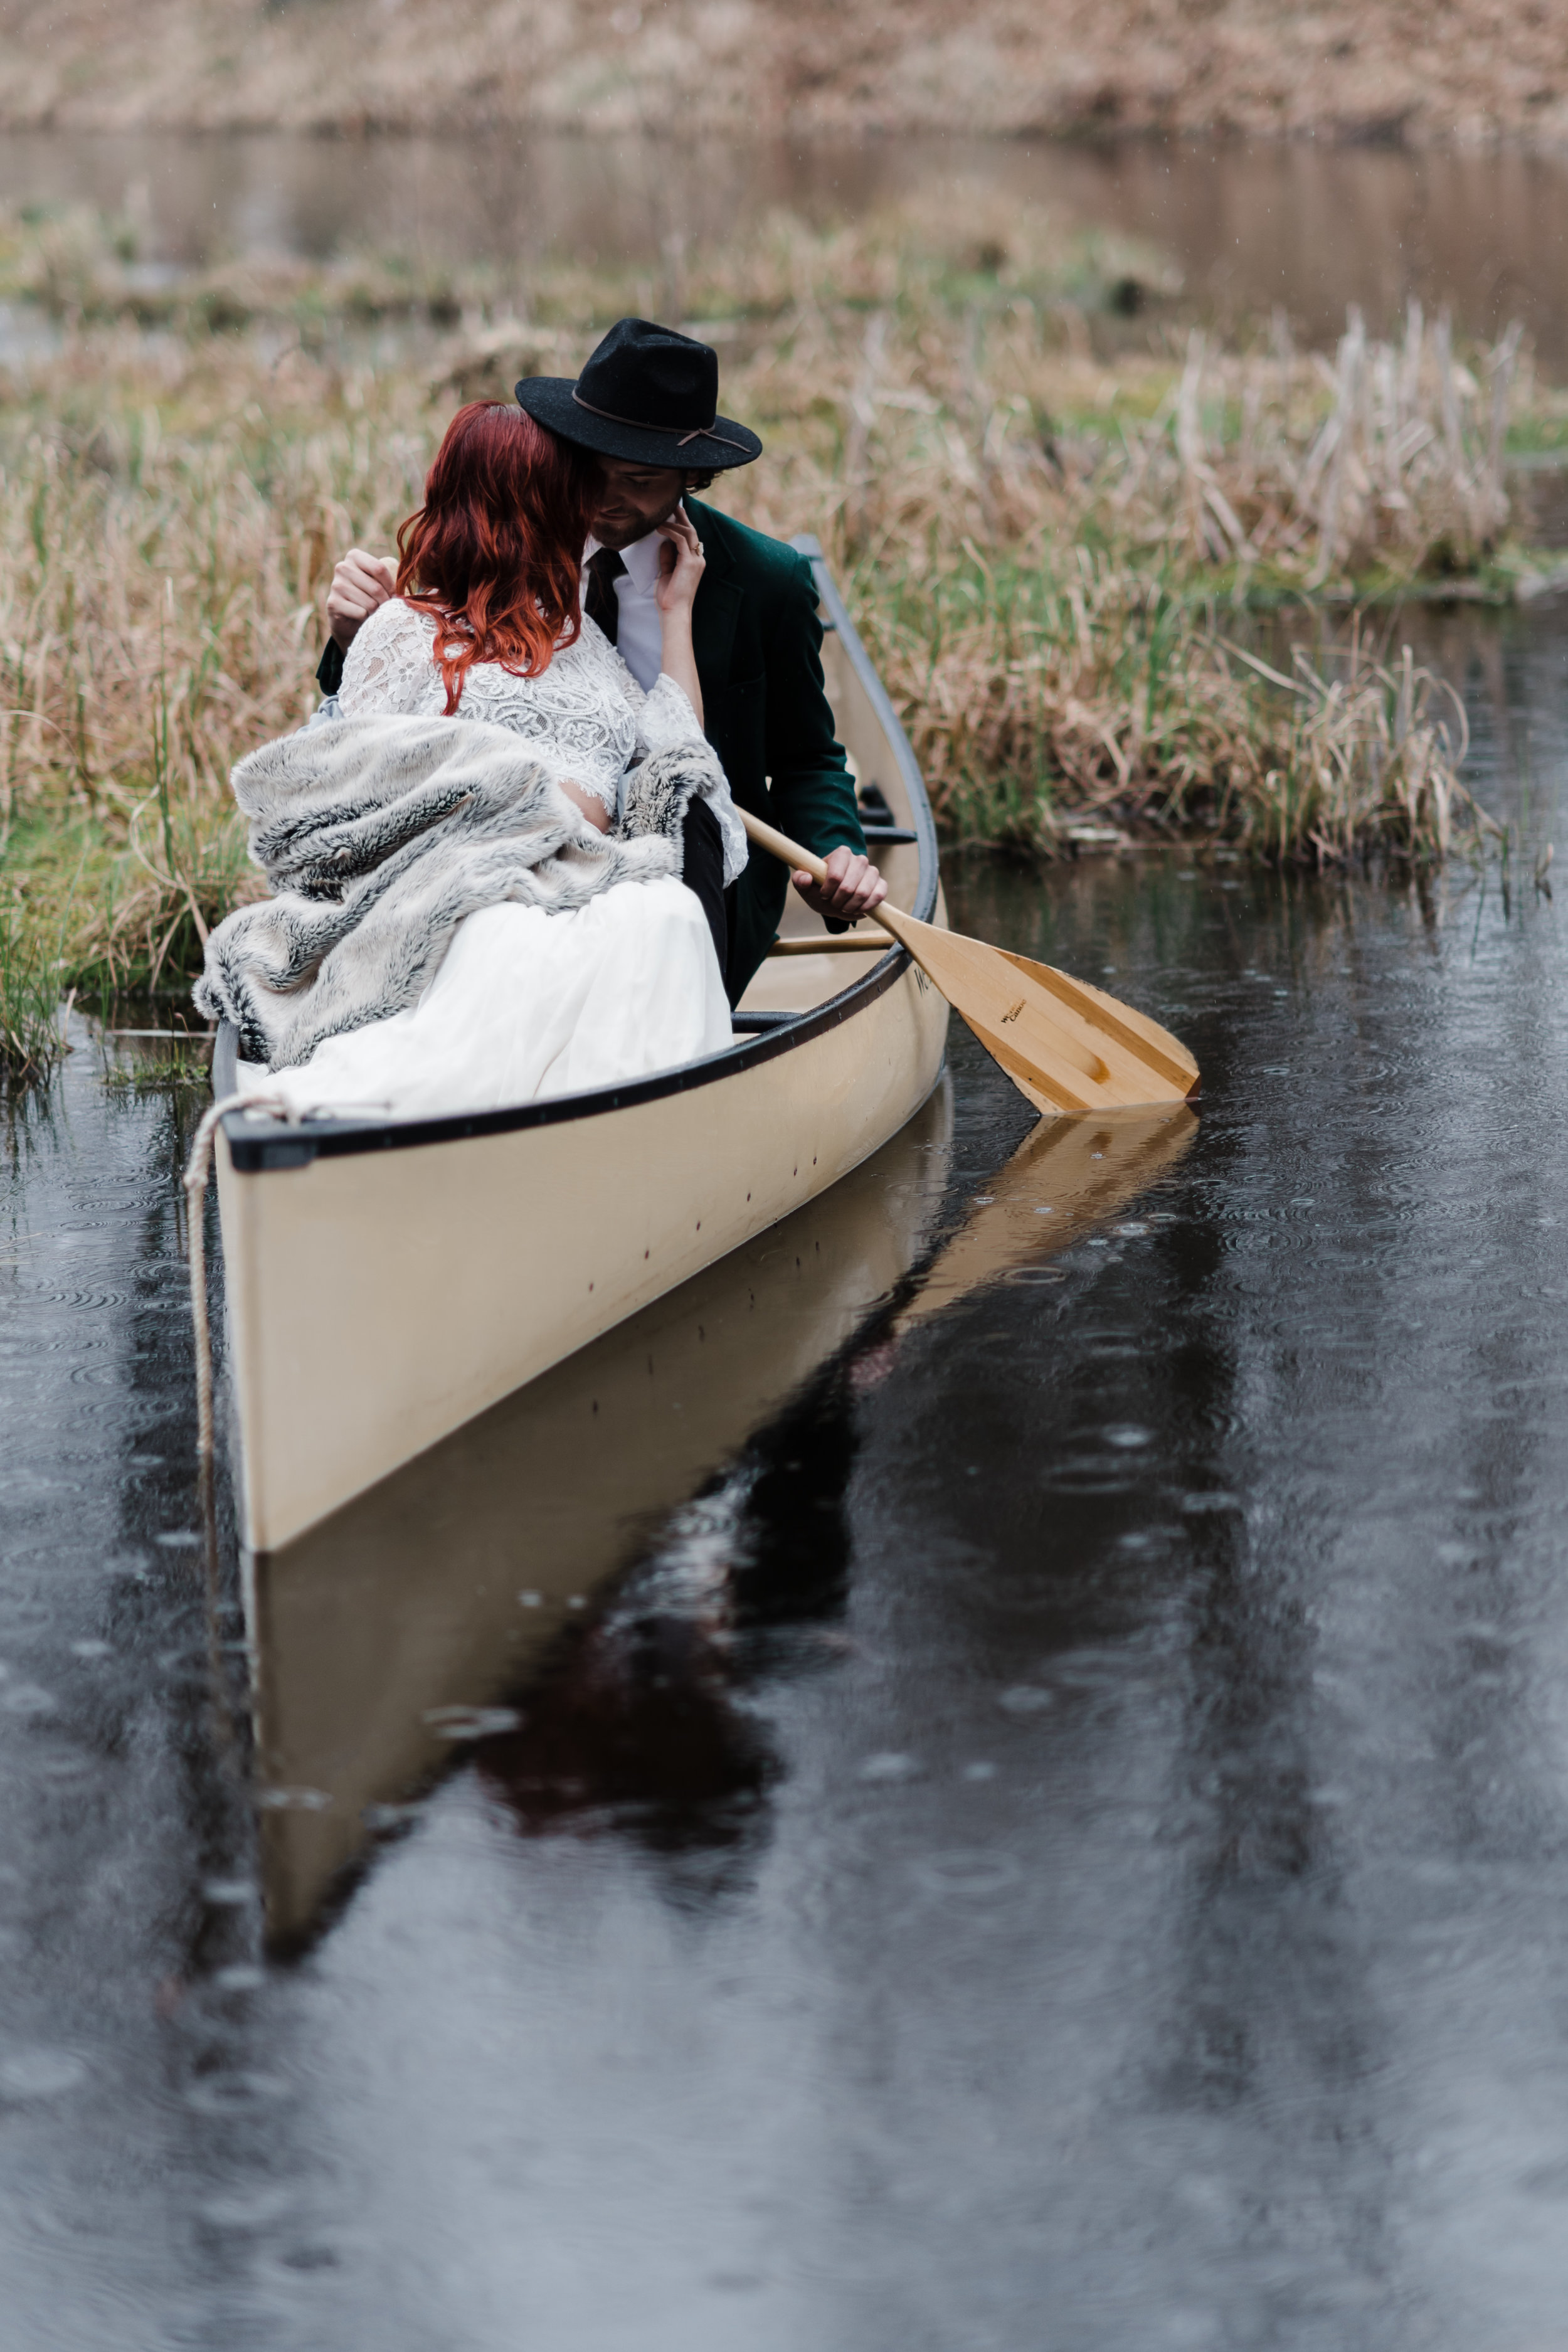 Bride in lace and beaded crop top and flowing skirt wrapped in a fuzzy blanket leaning on groom in green jacket and black fedora rowing a canoe.